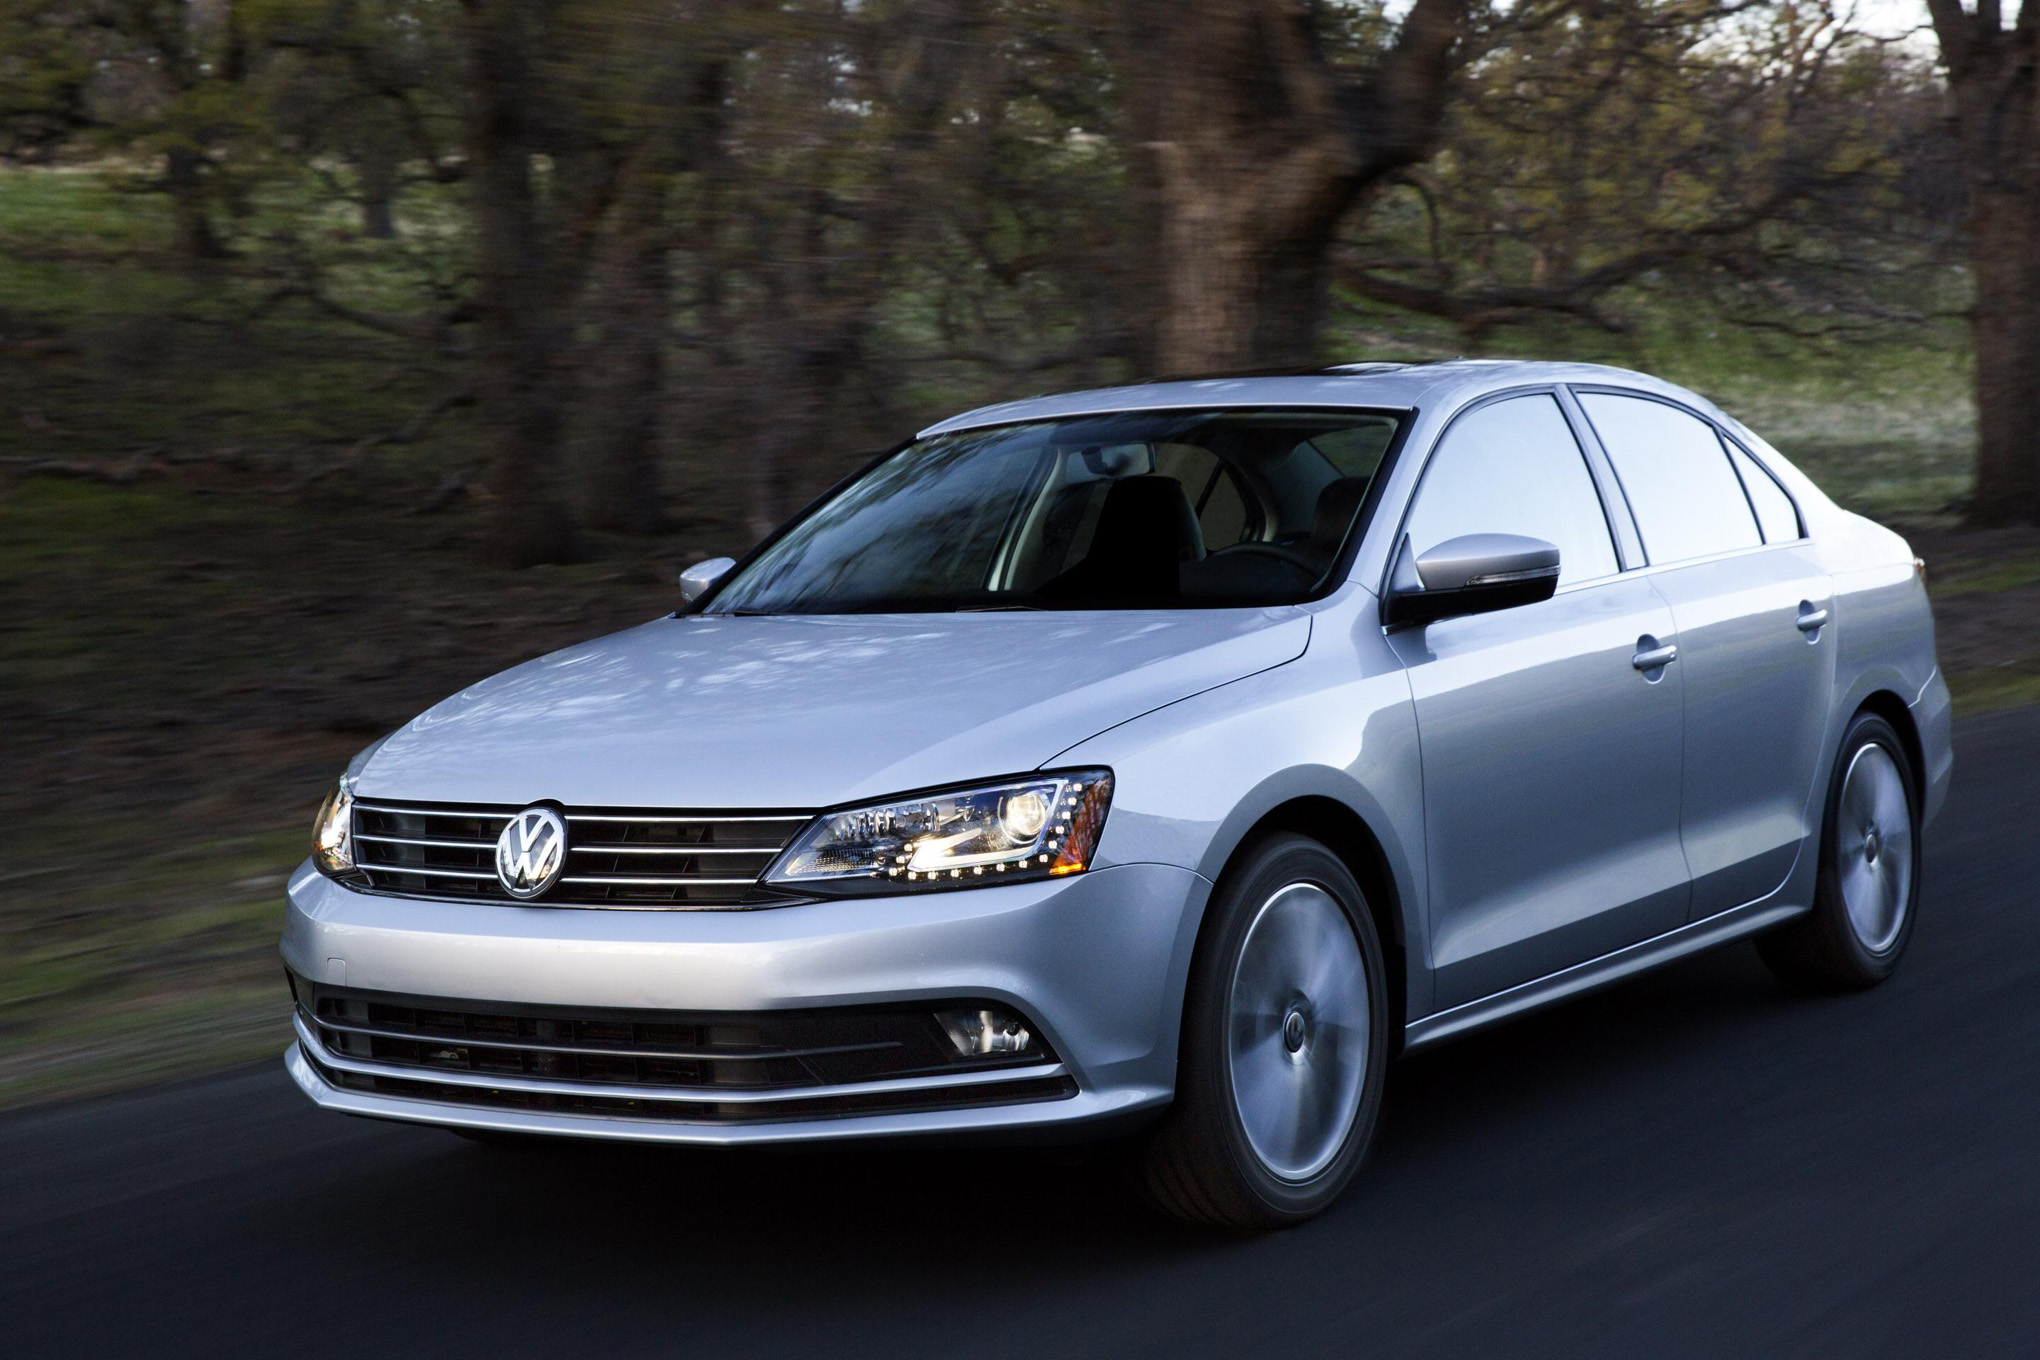 Volkswagen Lease Deals >> Jetta Lease Deal At Of Vw Of Downtown Los Angeles Volkswagen Of